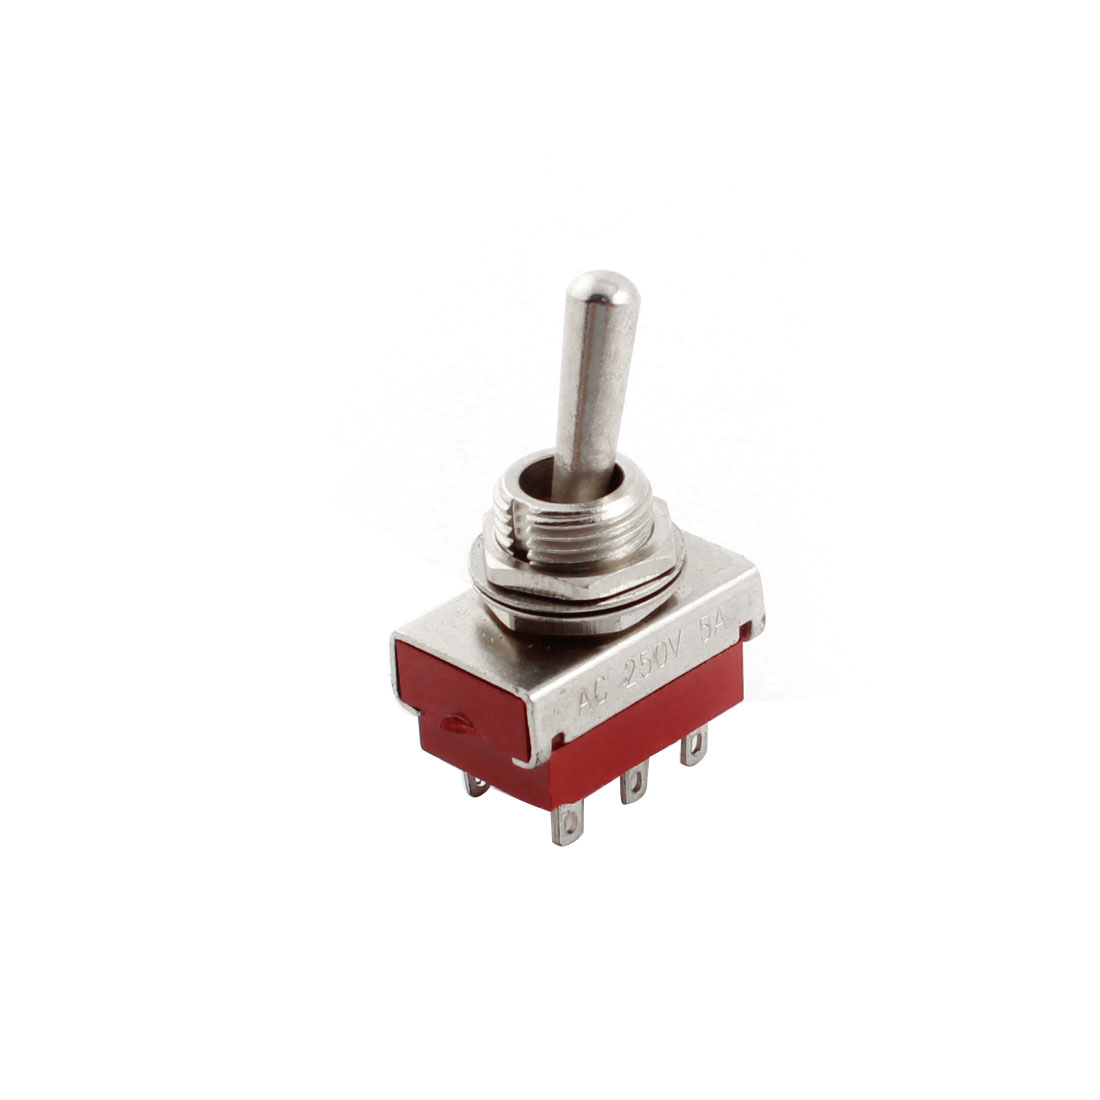 AC250V 5A 12mm Dia Thread Panel Mount DPDT 6-Pin 2-Position Latching Toggle Switch Red